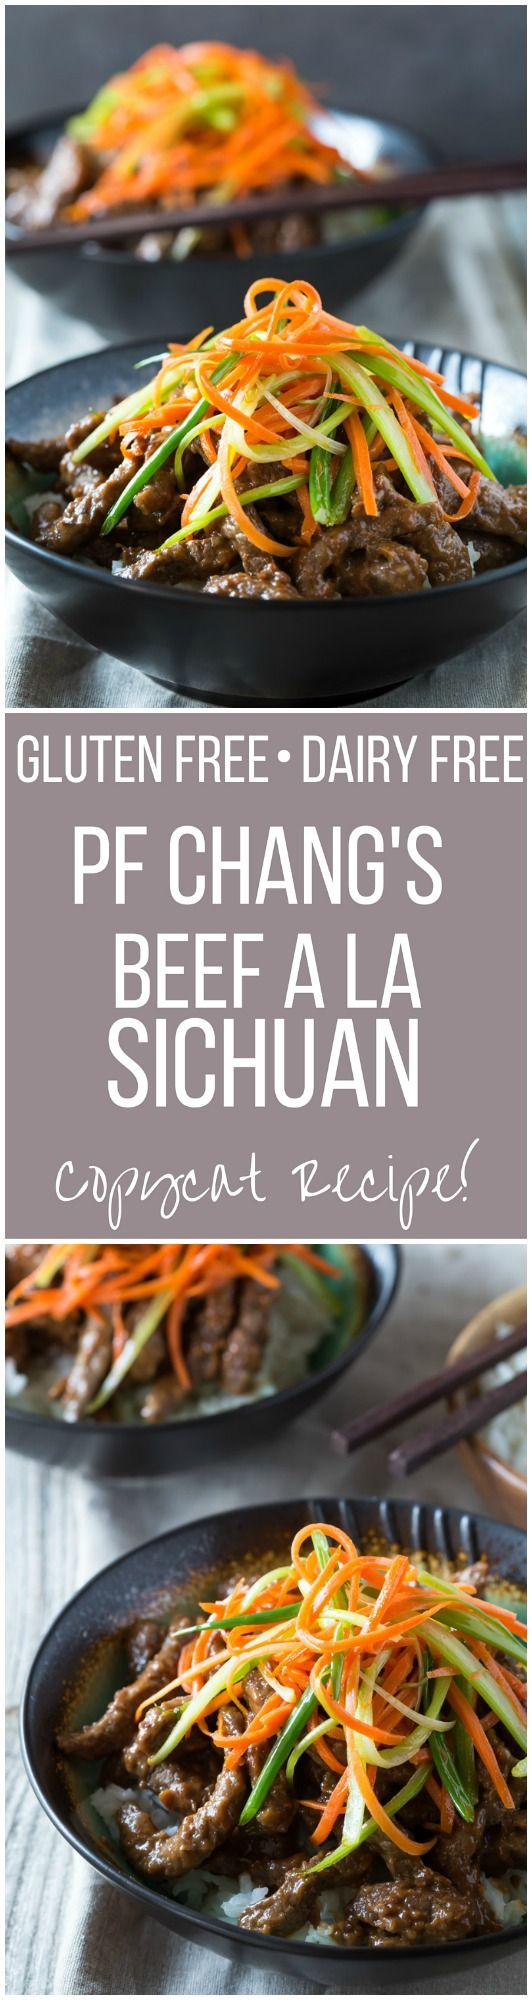 PF Chang's Beef a La Sichuan recipe ( Szechuan Beef ) This is a gluten free Copycat version that is so easy to make at home!